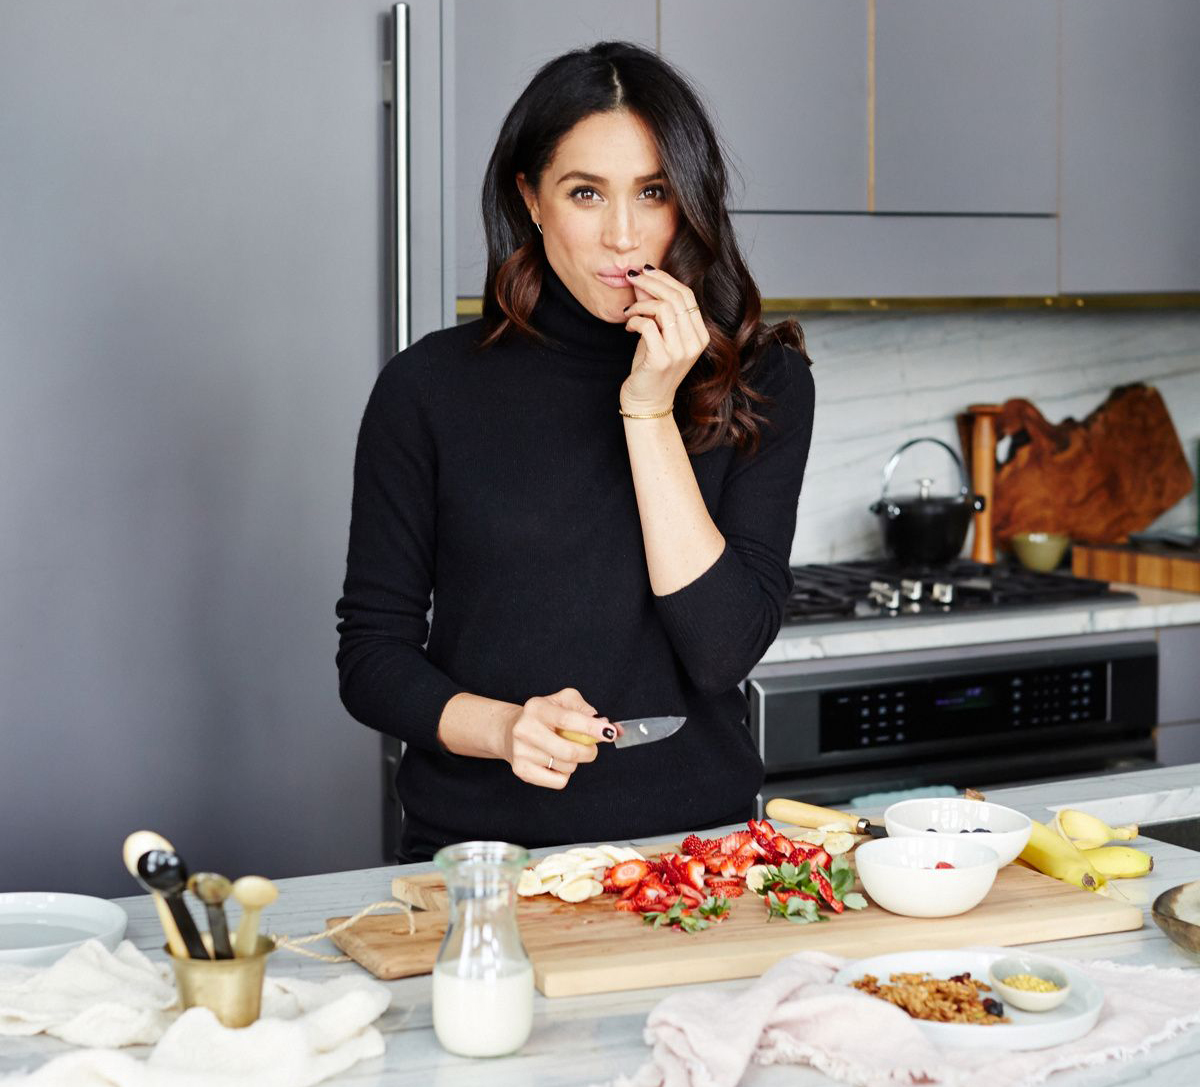 WHAT MEGHAN MARKLE EATS // DUCHESS OF SUSSEX DIET